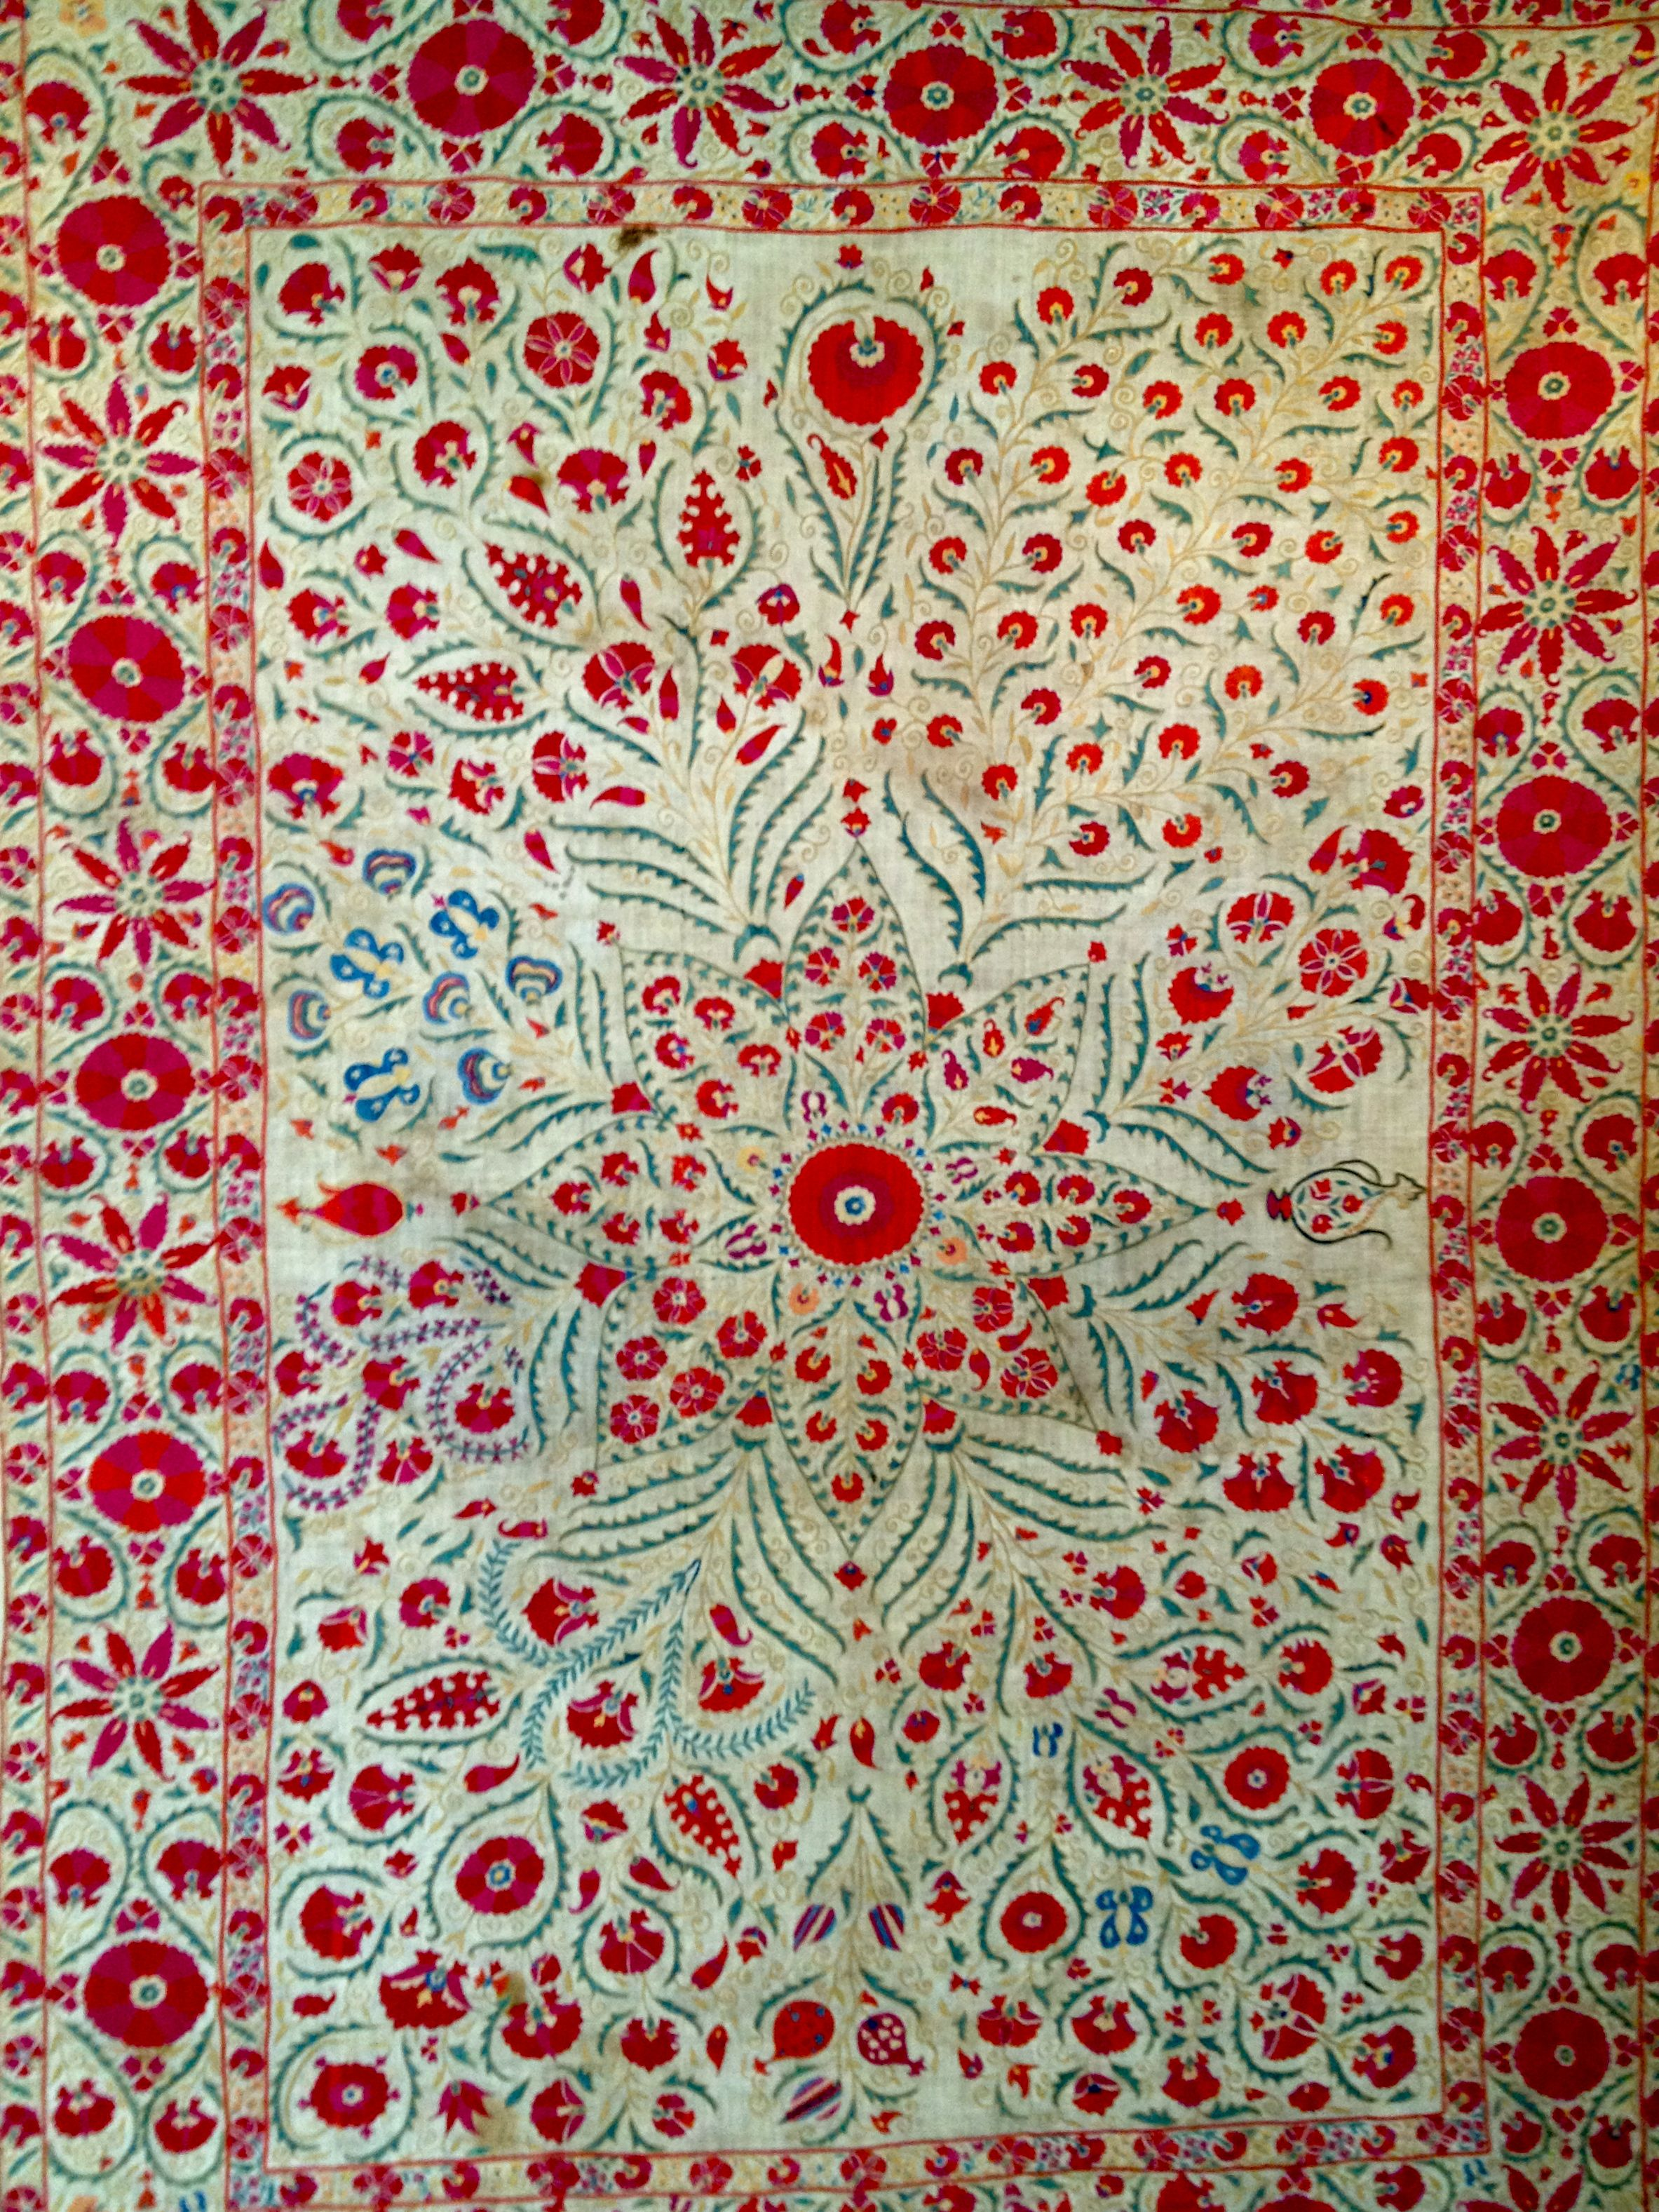 tapestry designs free | Tapestry for wall | Pinterest | Wall ...